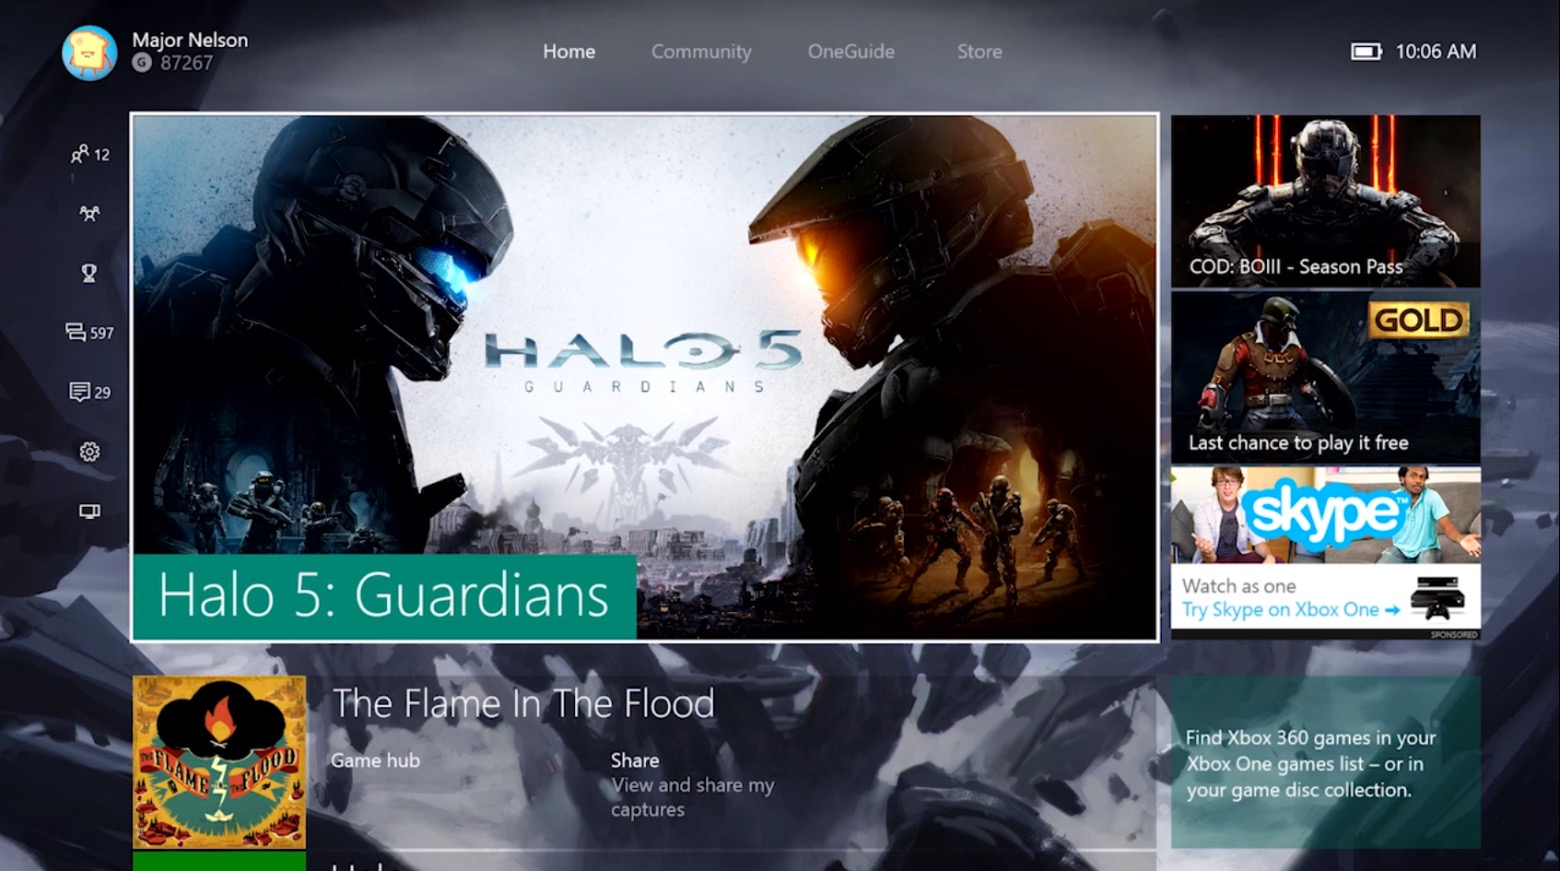 Microsoft releases new New Xbox One Preview build with updated